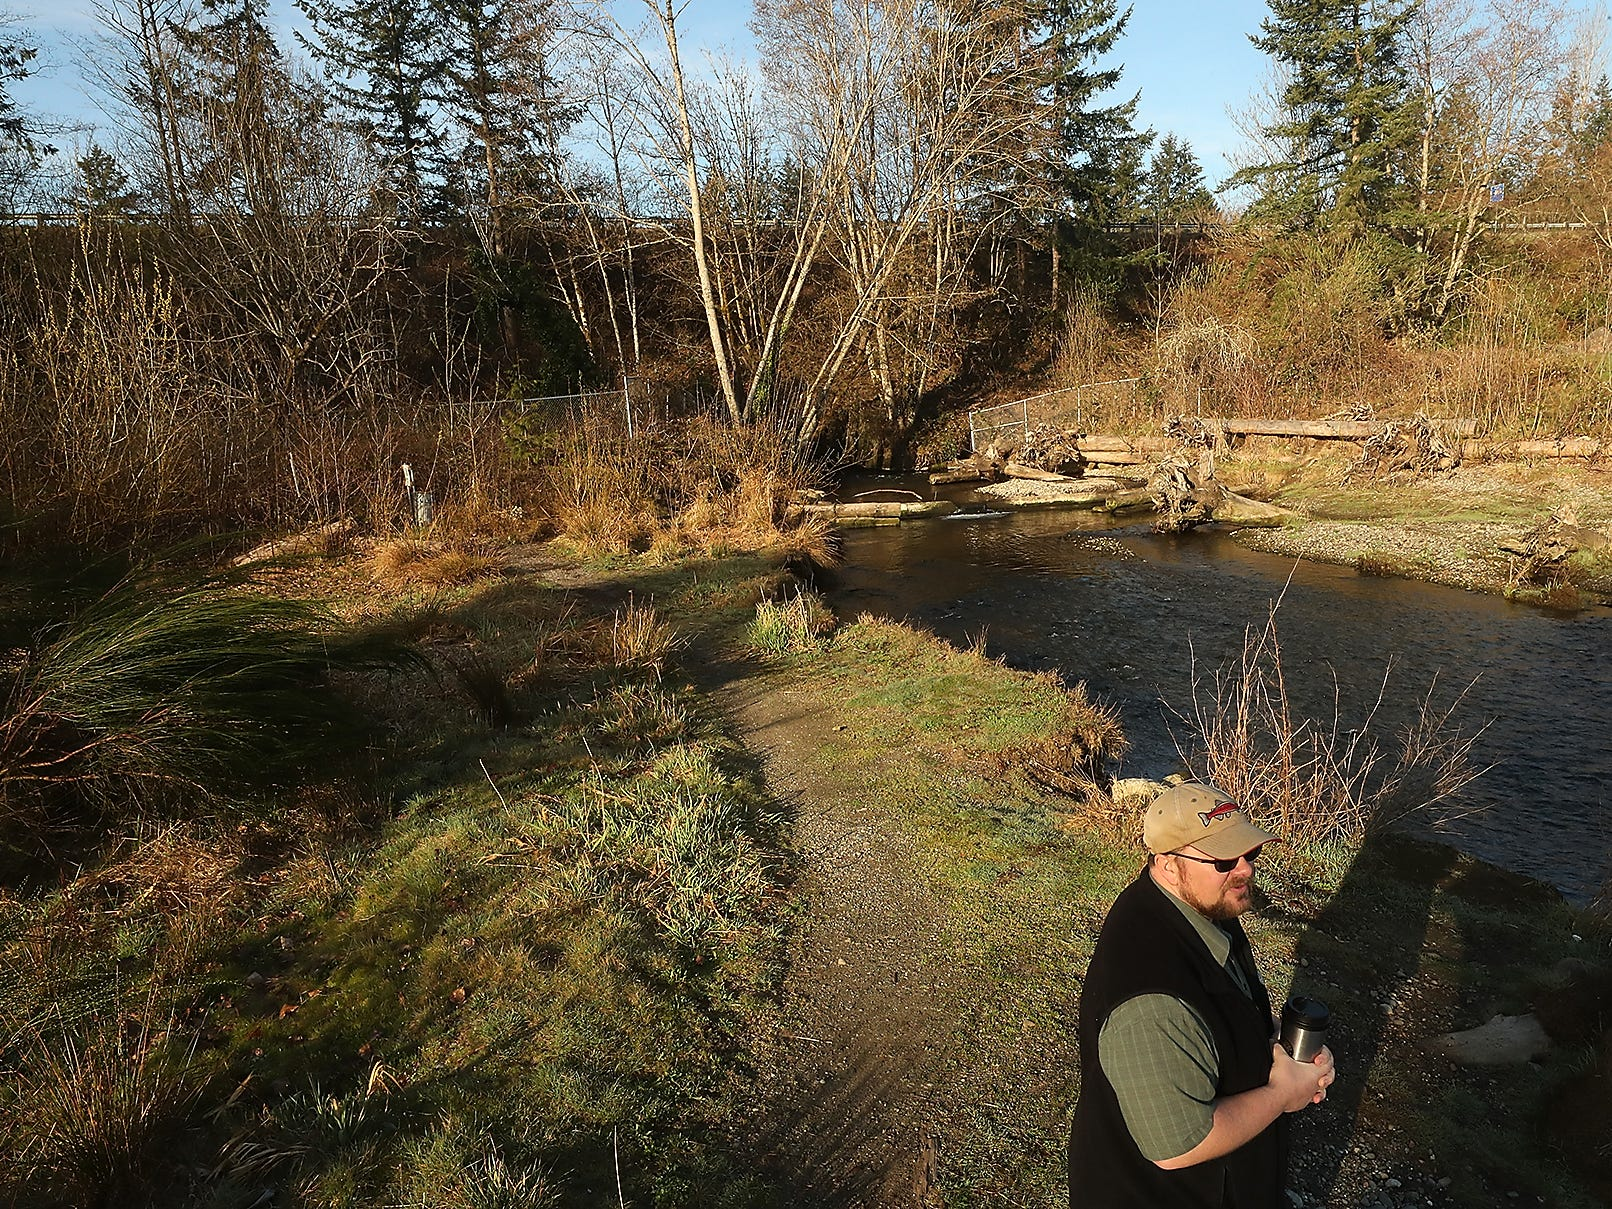 Washington Department of Fish and Wildlife's Chris Waldbillig stands along the mouth of Chico Creek as he talks about the proposed bridge project on Friday, March 29, 2019.